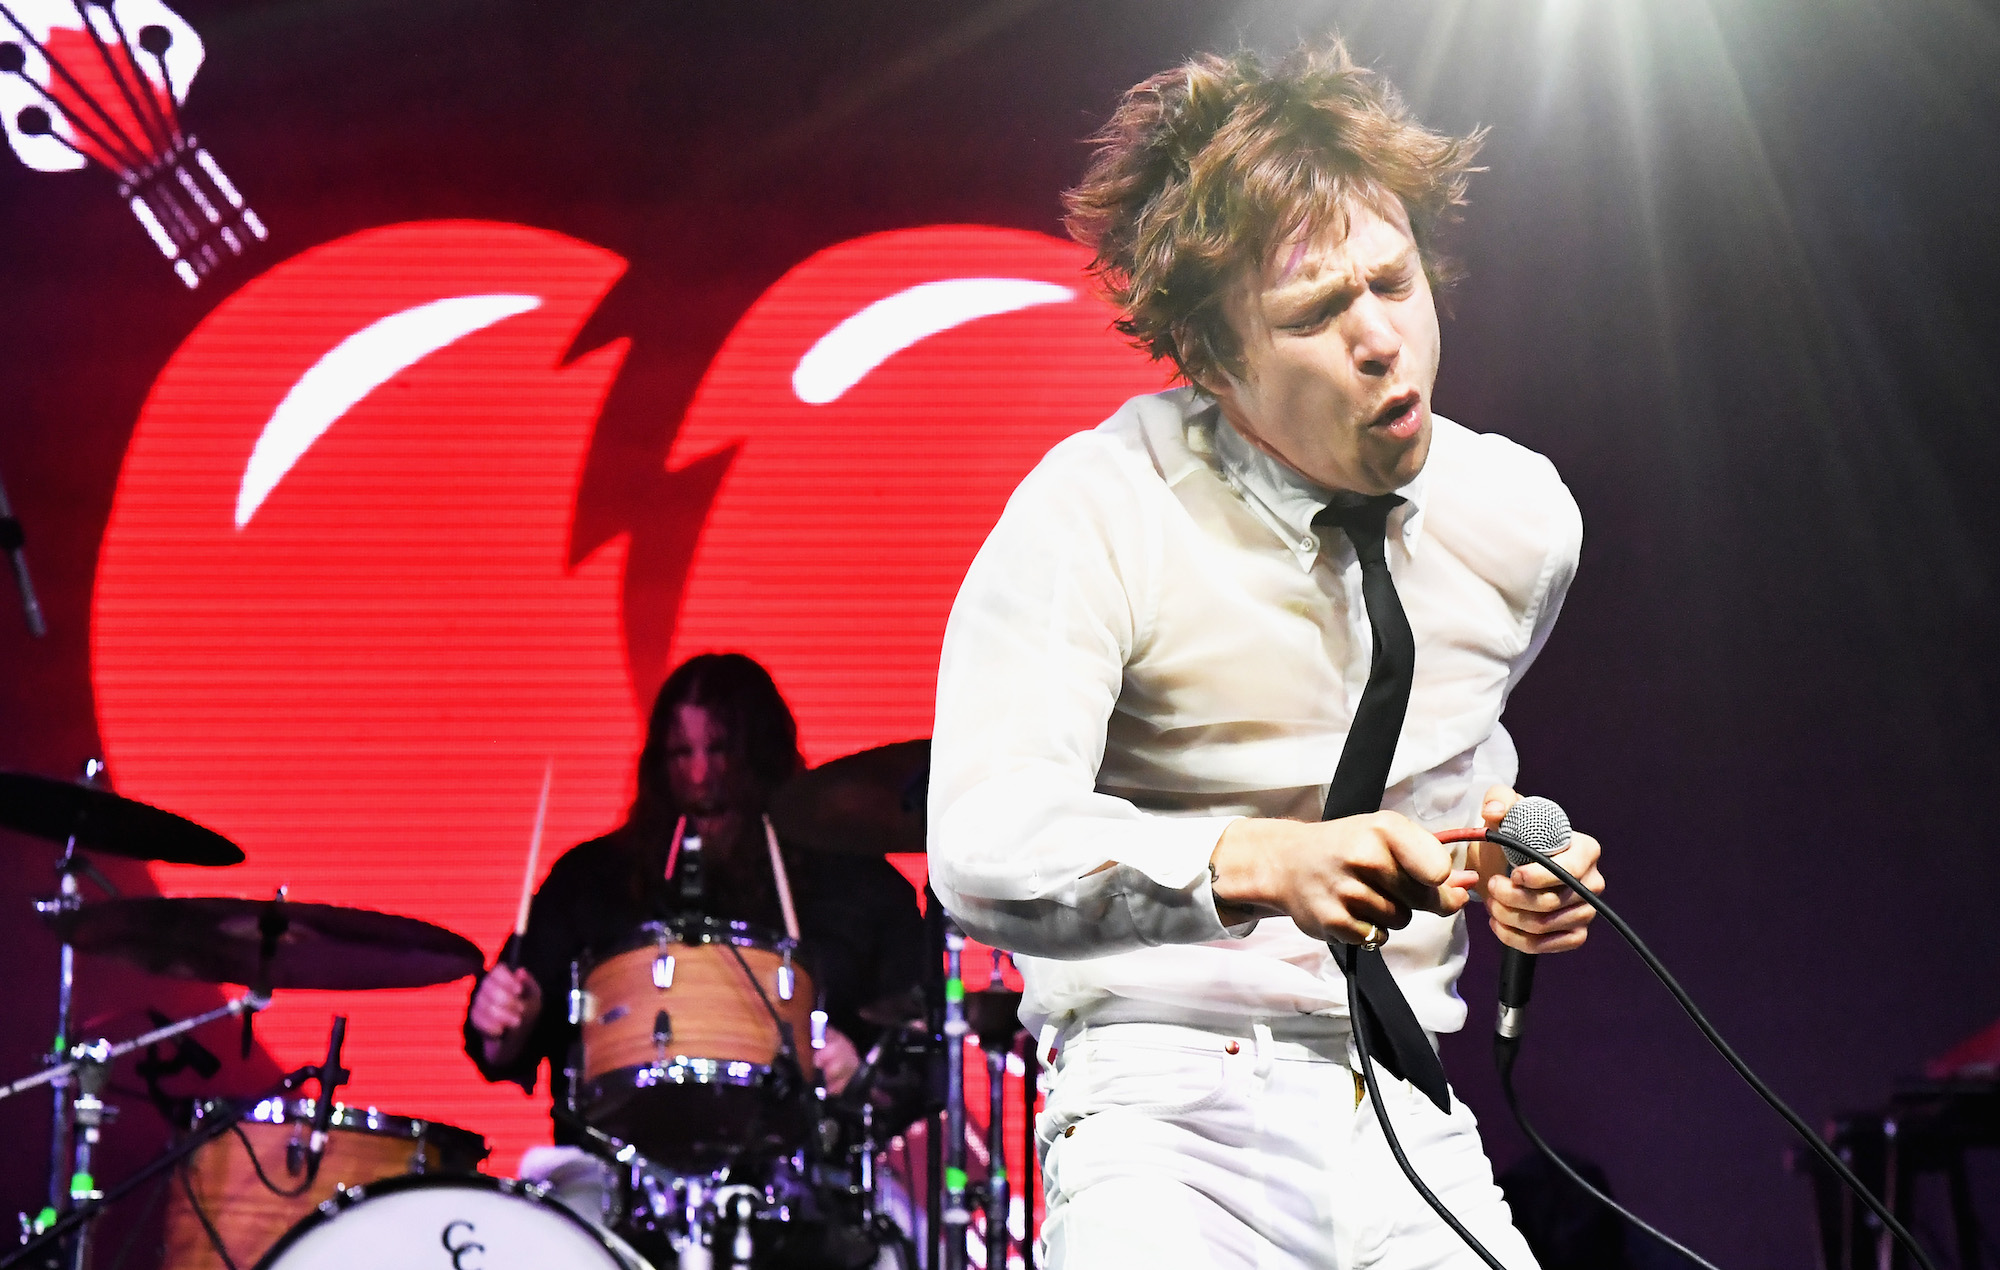 Cage The Elephant Wallpapers High Quality | Download Free